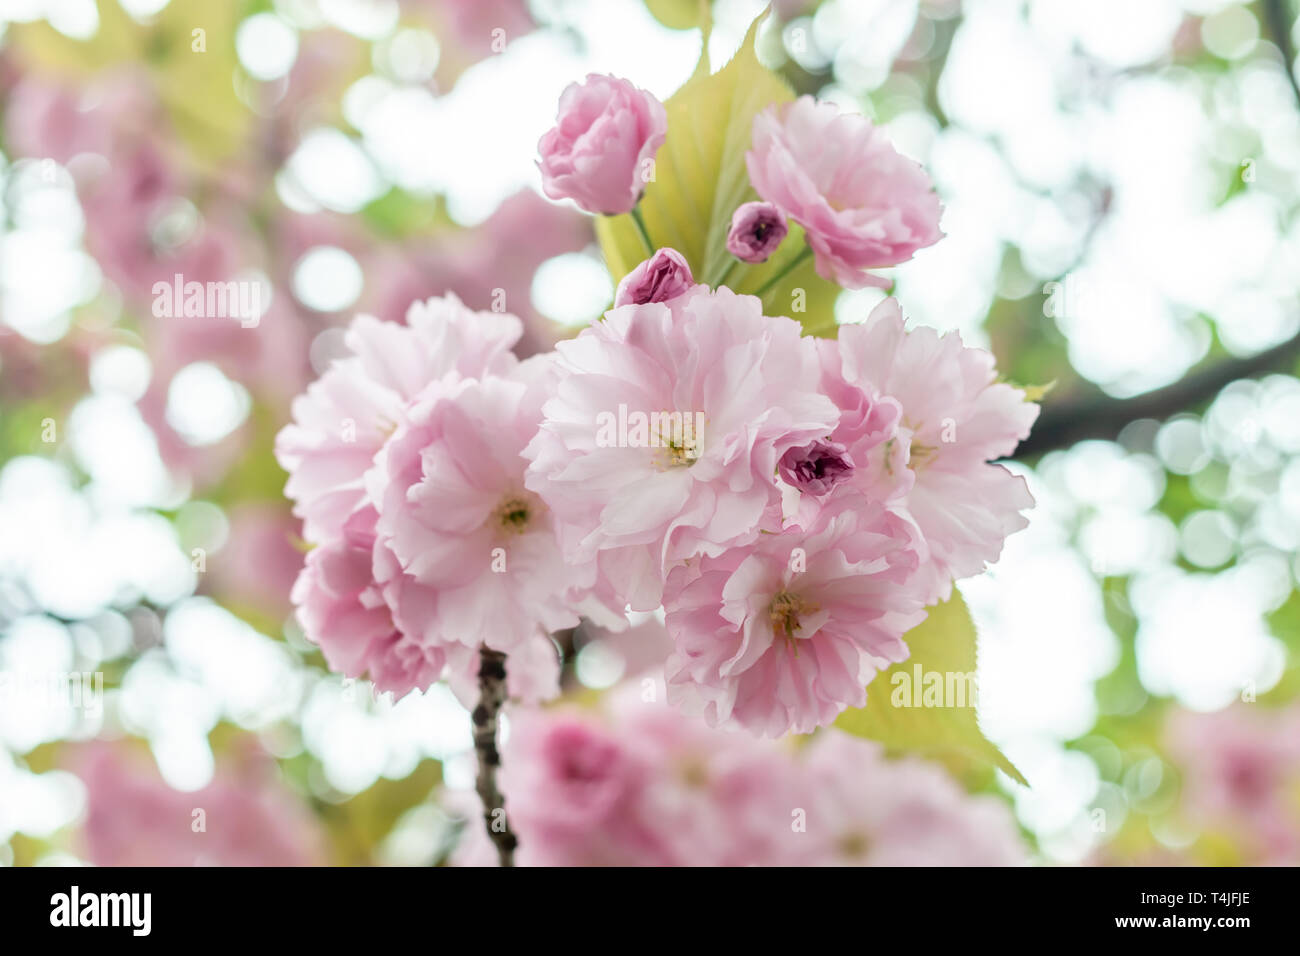 closeup fruit tree pink flowers spring blossom - Stock Image